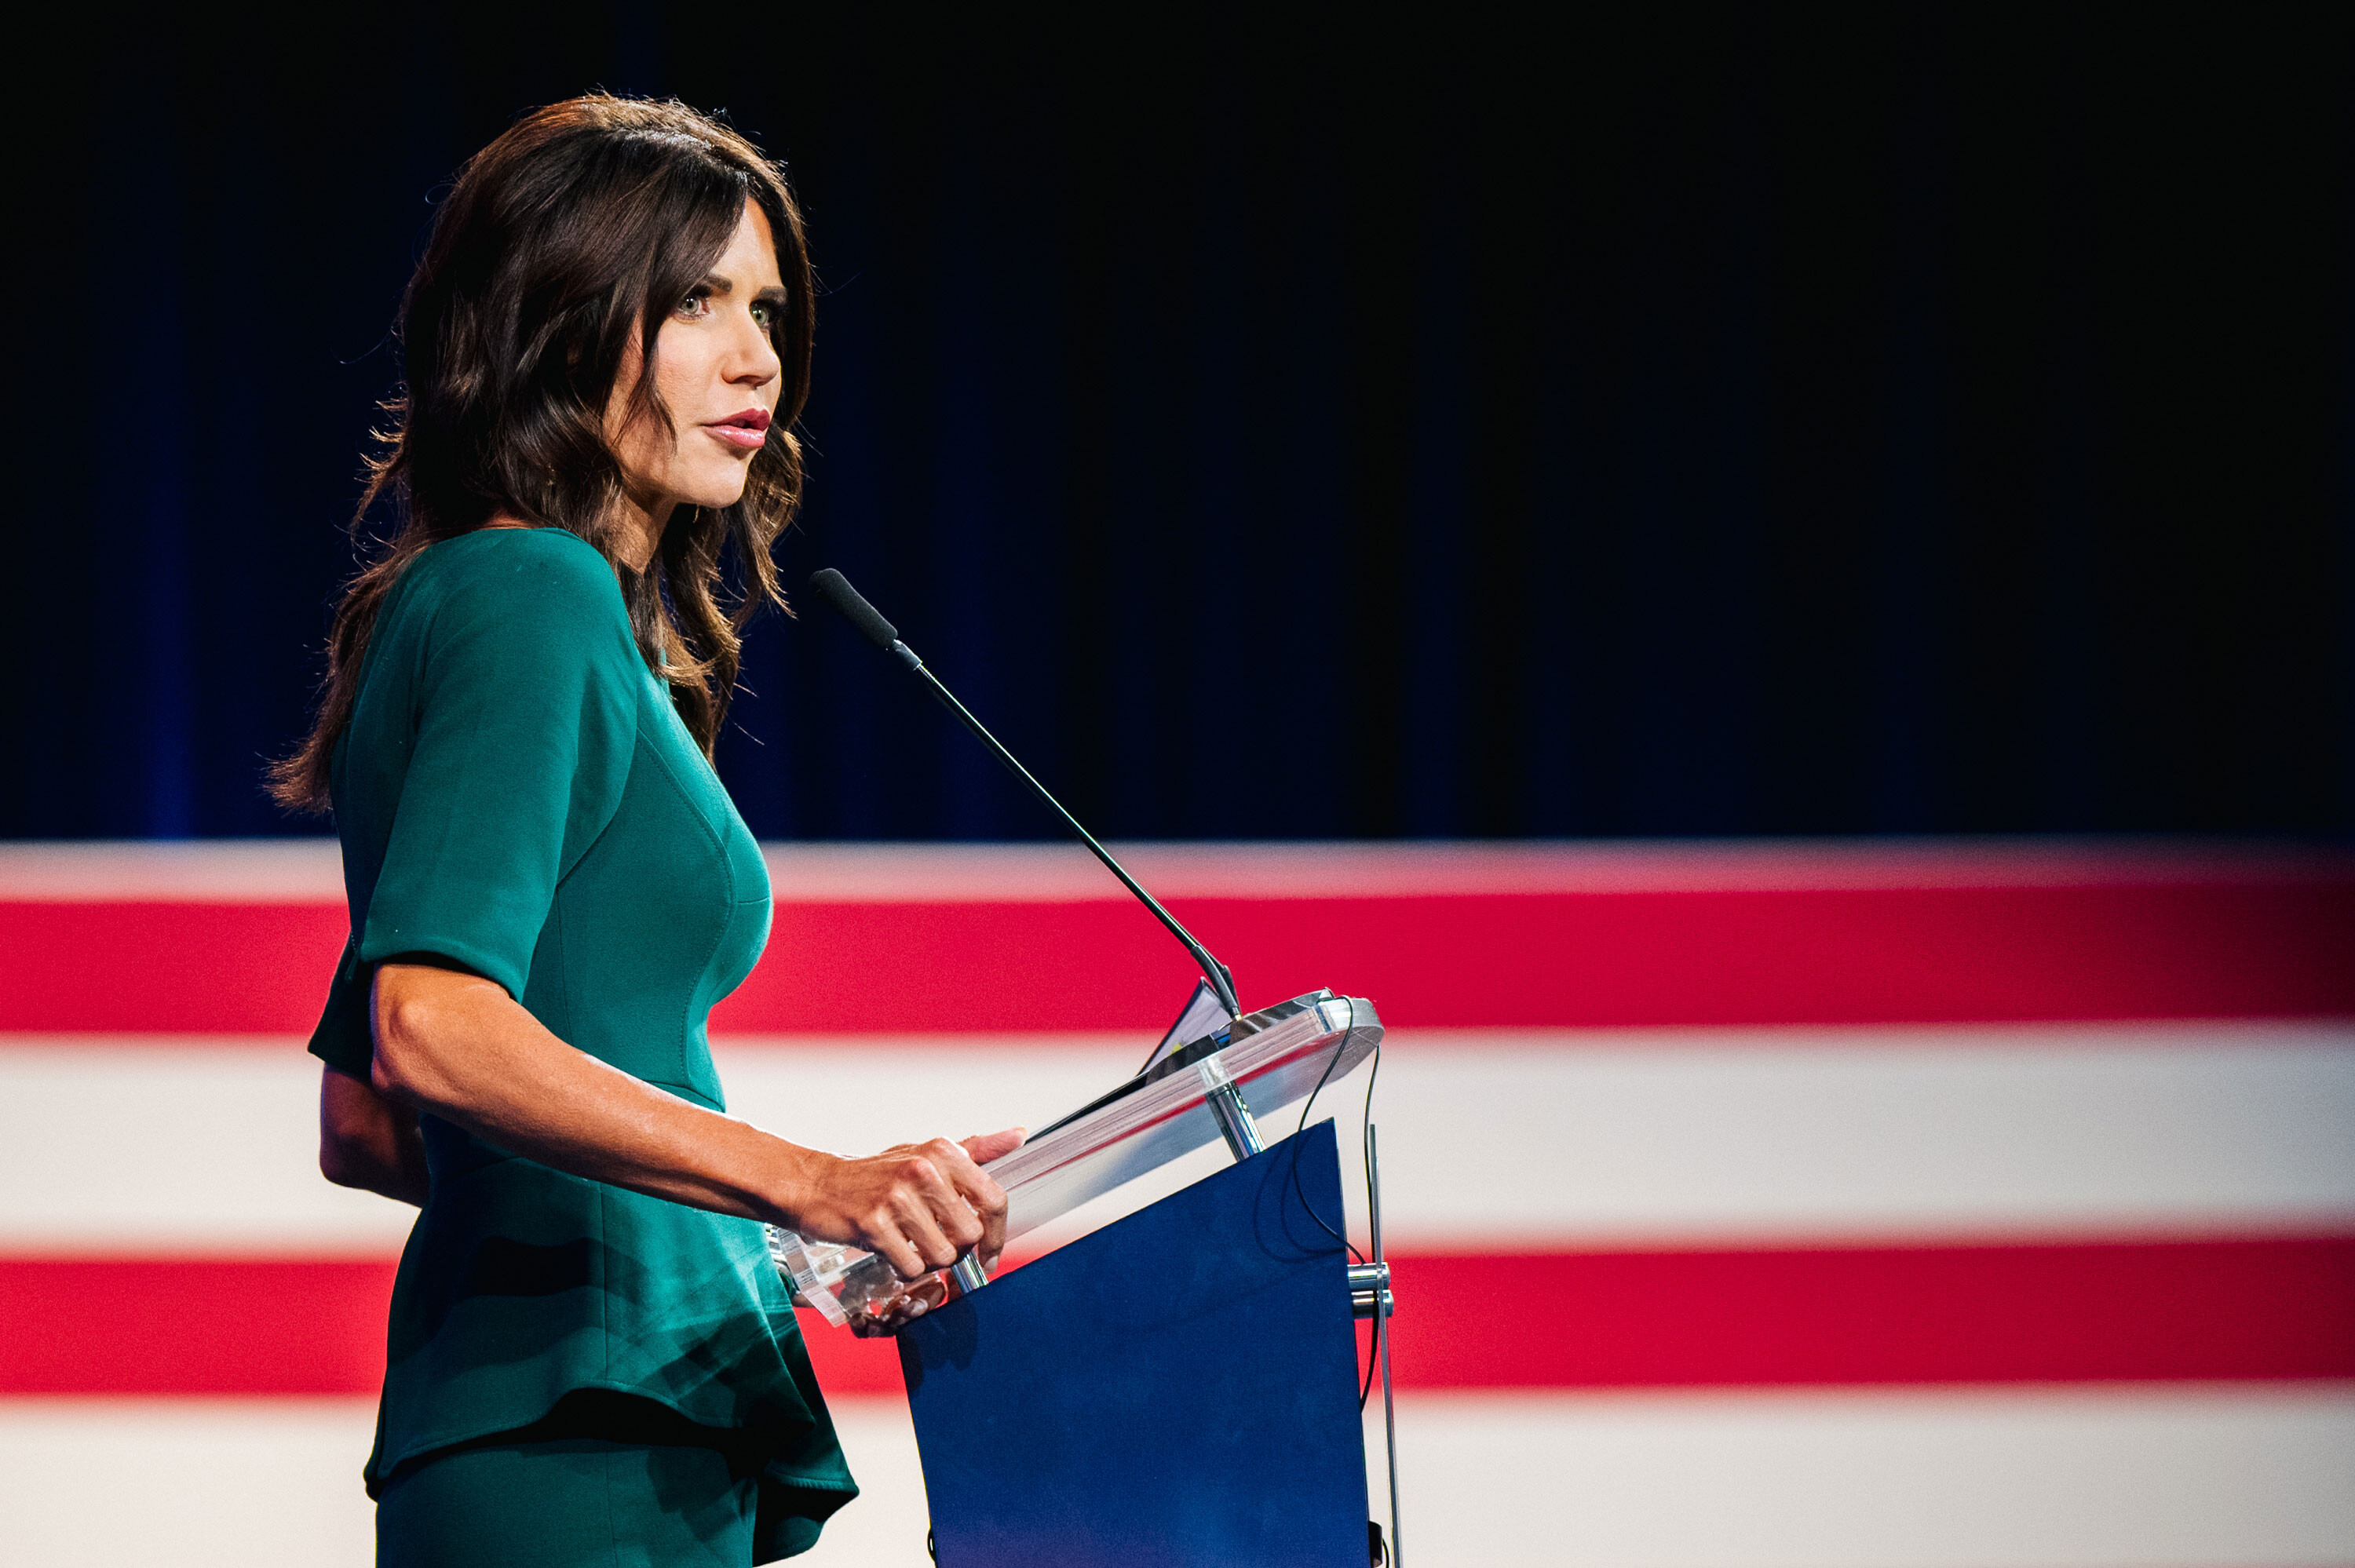 Kristi Noem criticizes GOP governors who enacted Covid-19 mandates while accusing some of rewriting their history